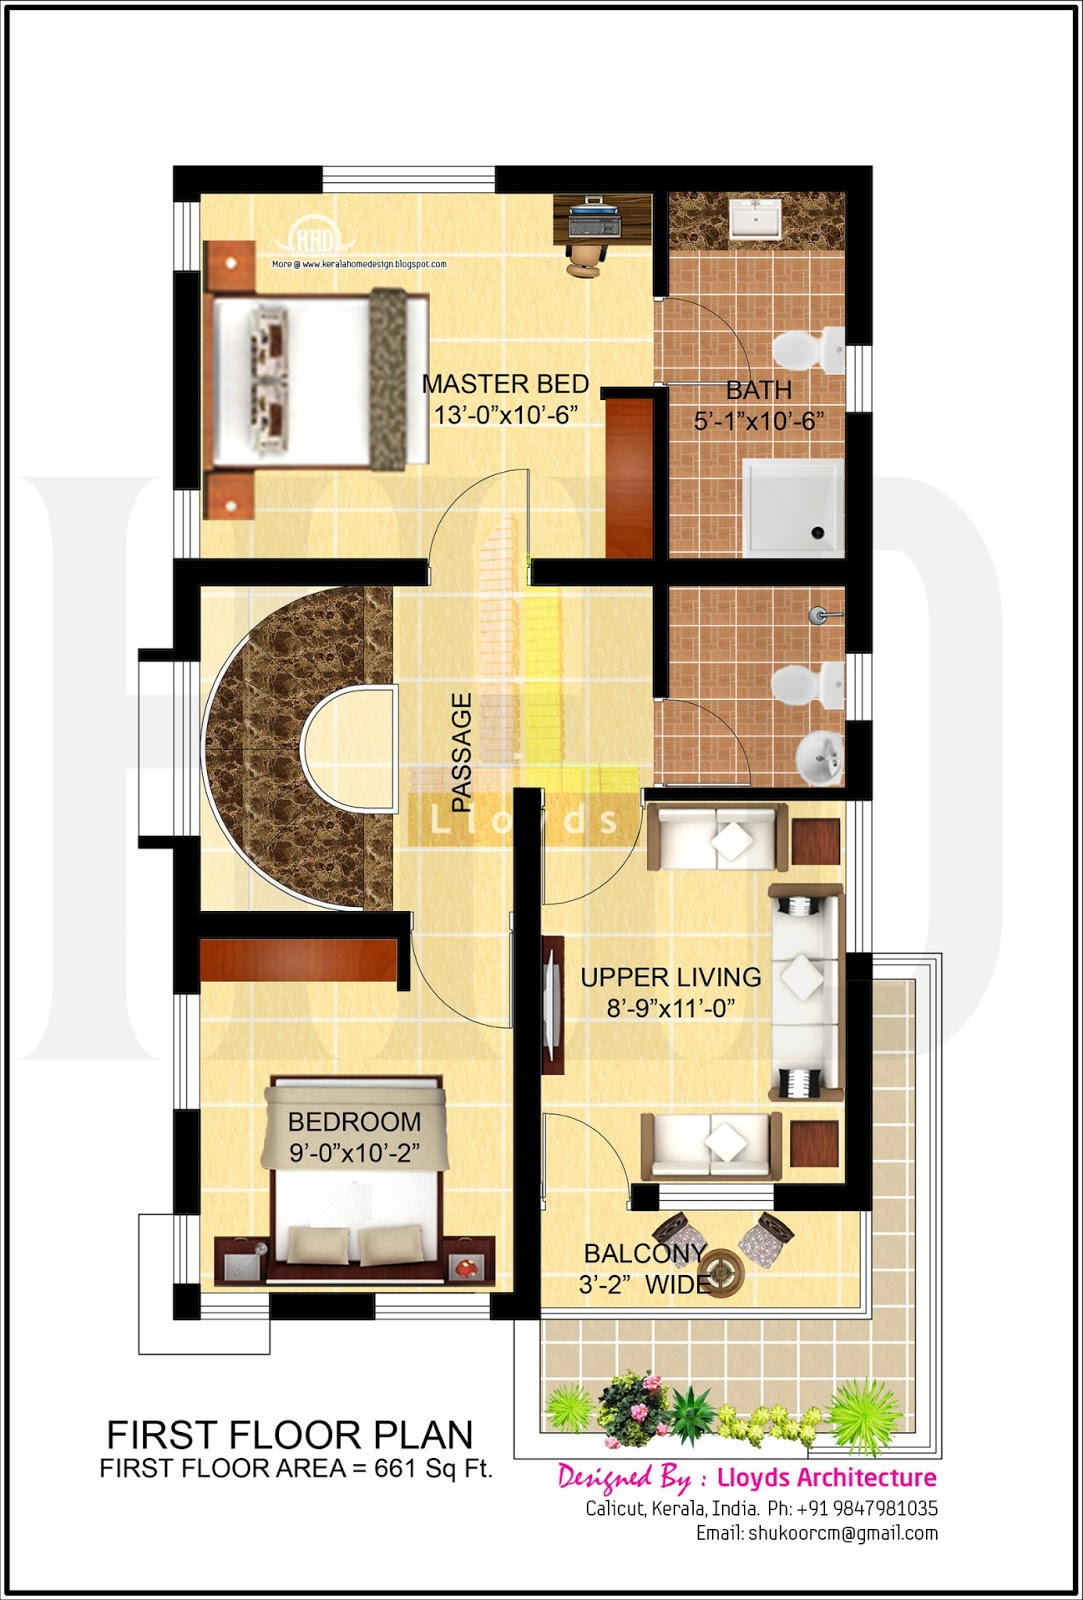 4 bedroom house plan in less that 3 cents home kerala plans - Four bedroom building plan ...